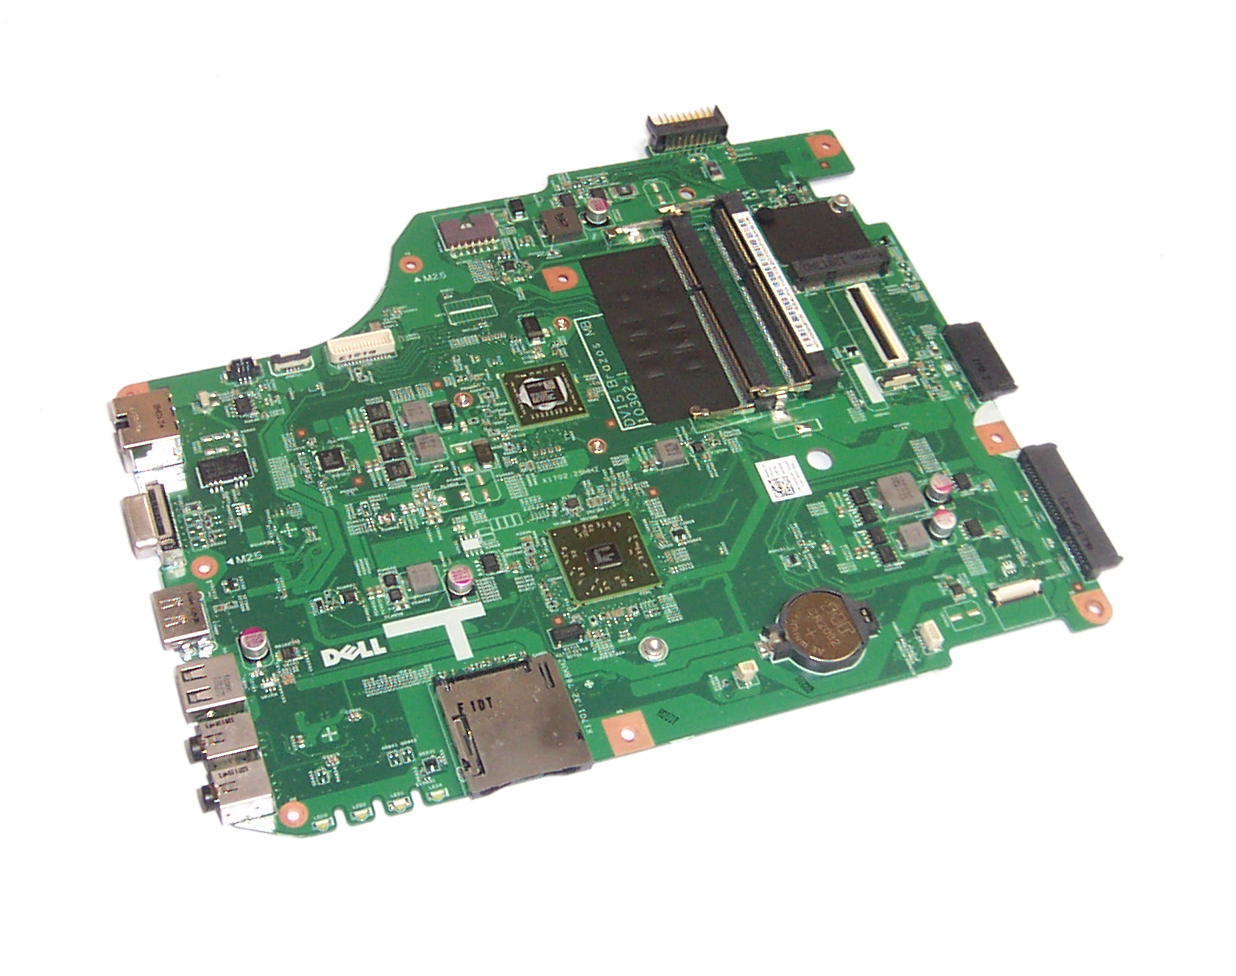 Dell H2KGP Inspiron M5040 Motherboard with AMD C-60 Processor